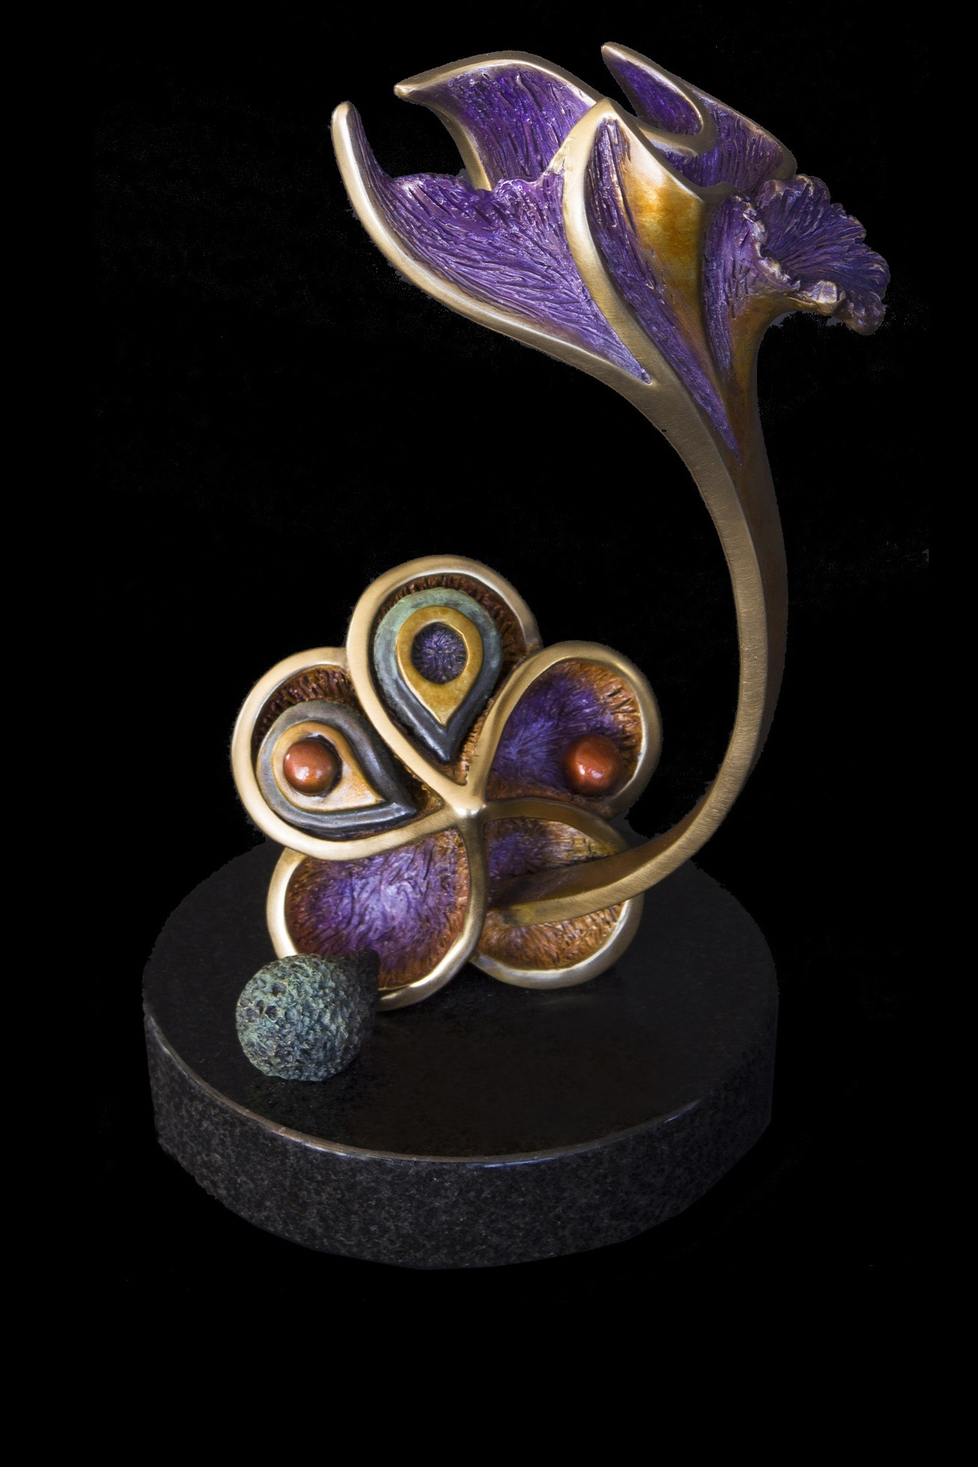 "Bursting Forth with Joy  , Bronze, 10.5"" H x 6.5"" W x 5.5"" D, Edition of 85:  There are times in our lives when we must consciously choose to crack open the protective shell we shield our seed of joy in and allow that seed to break free, take root, and then burst forth and bloom in all its glory."